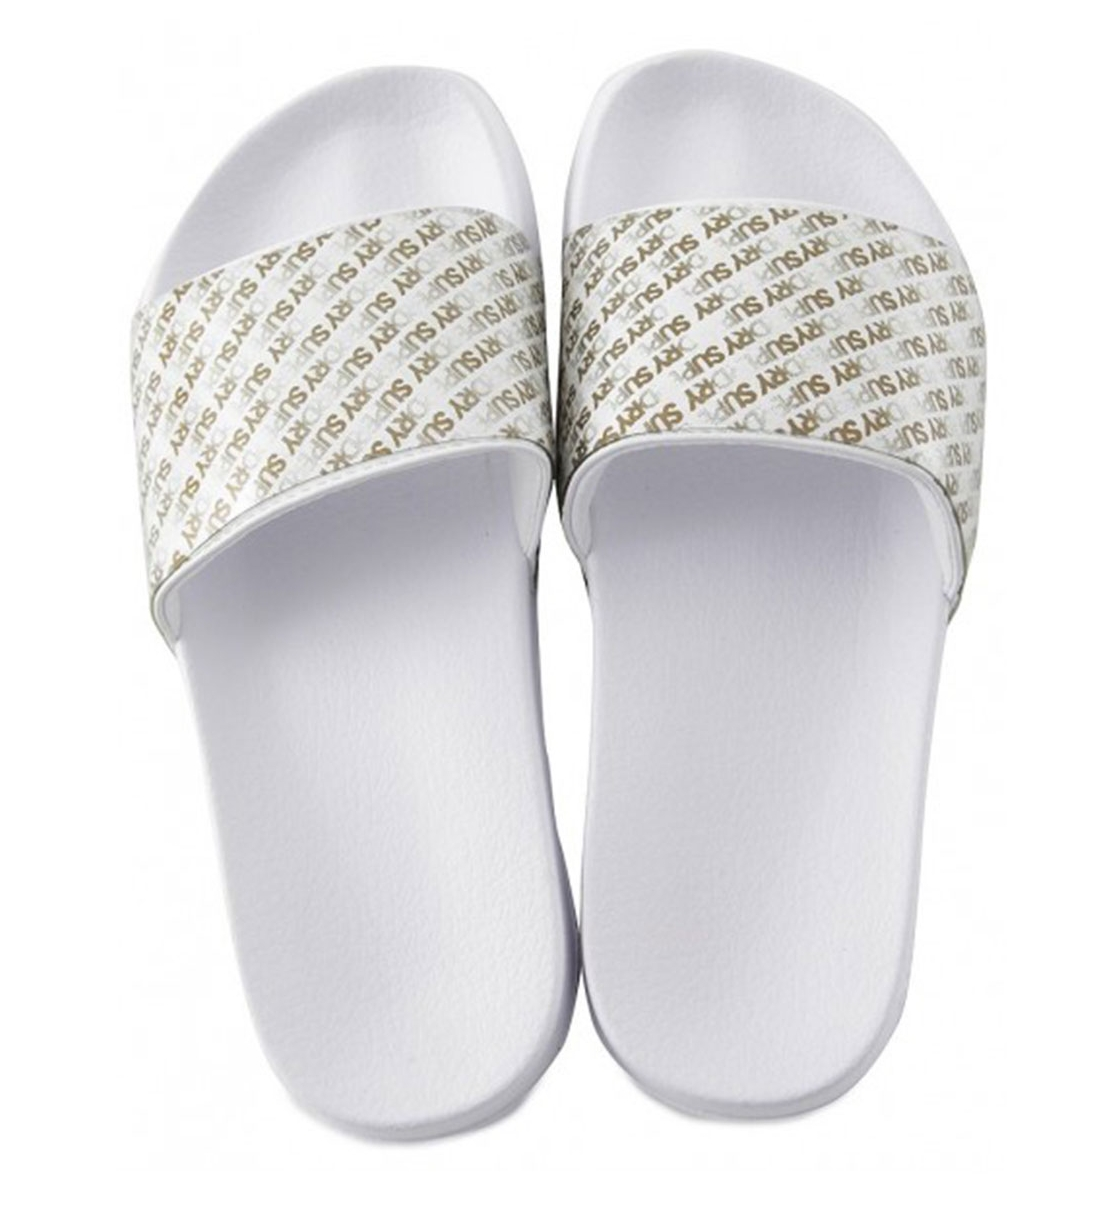 Superdry Ss19 D2 Superdry Repeat Jelly Pool Slide Παπουτσι Γυναικειο